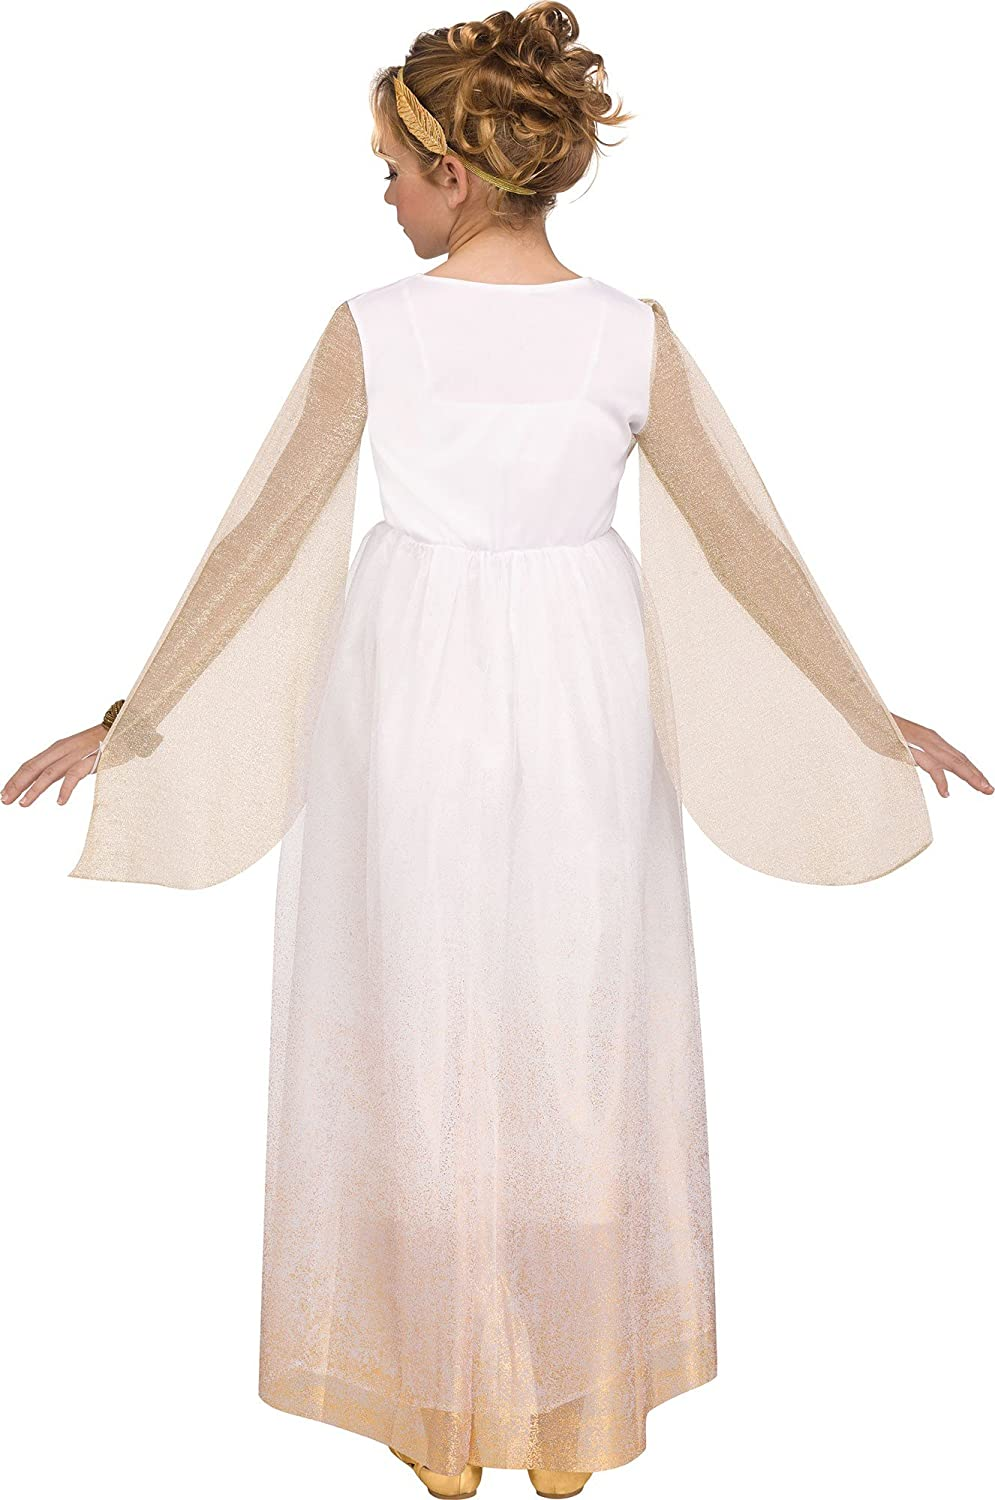 Girls Greek Goddess Costume Gold Trim Dress Kids Halloween Party Fancy Dress up